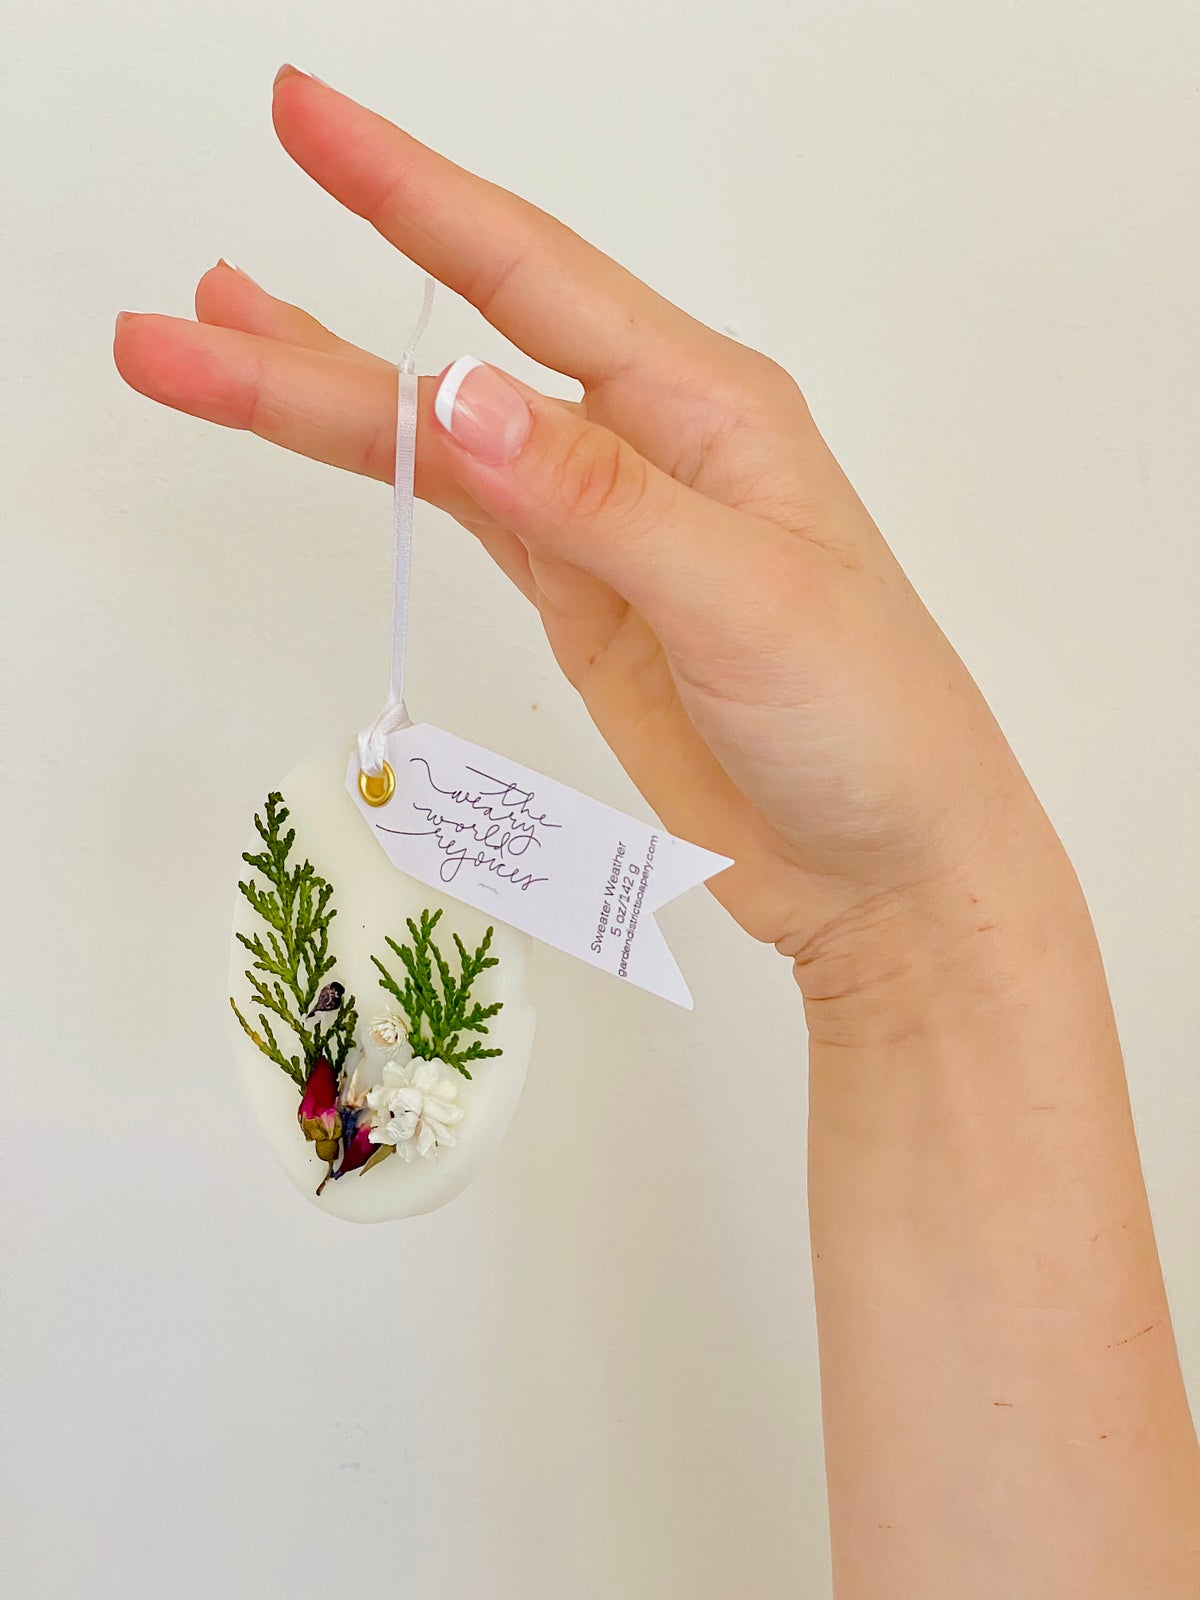 Sweater Weather Scented Soy Wax Sachet